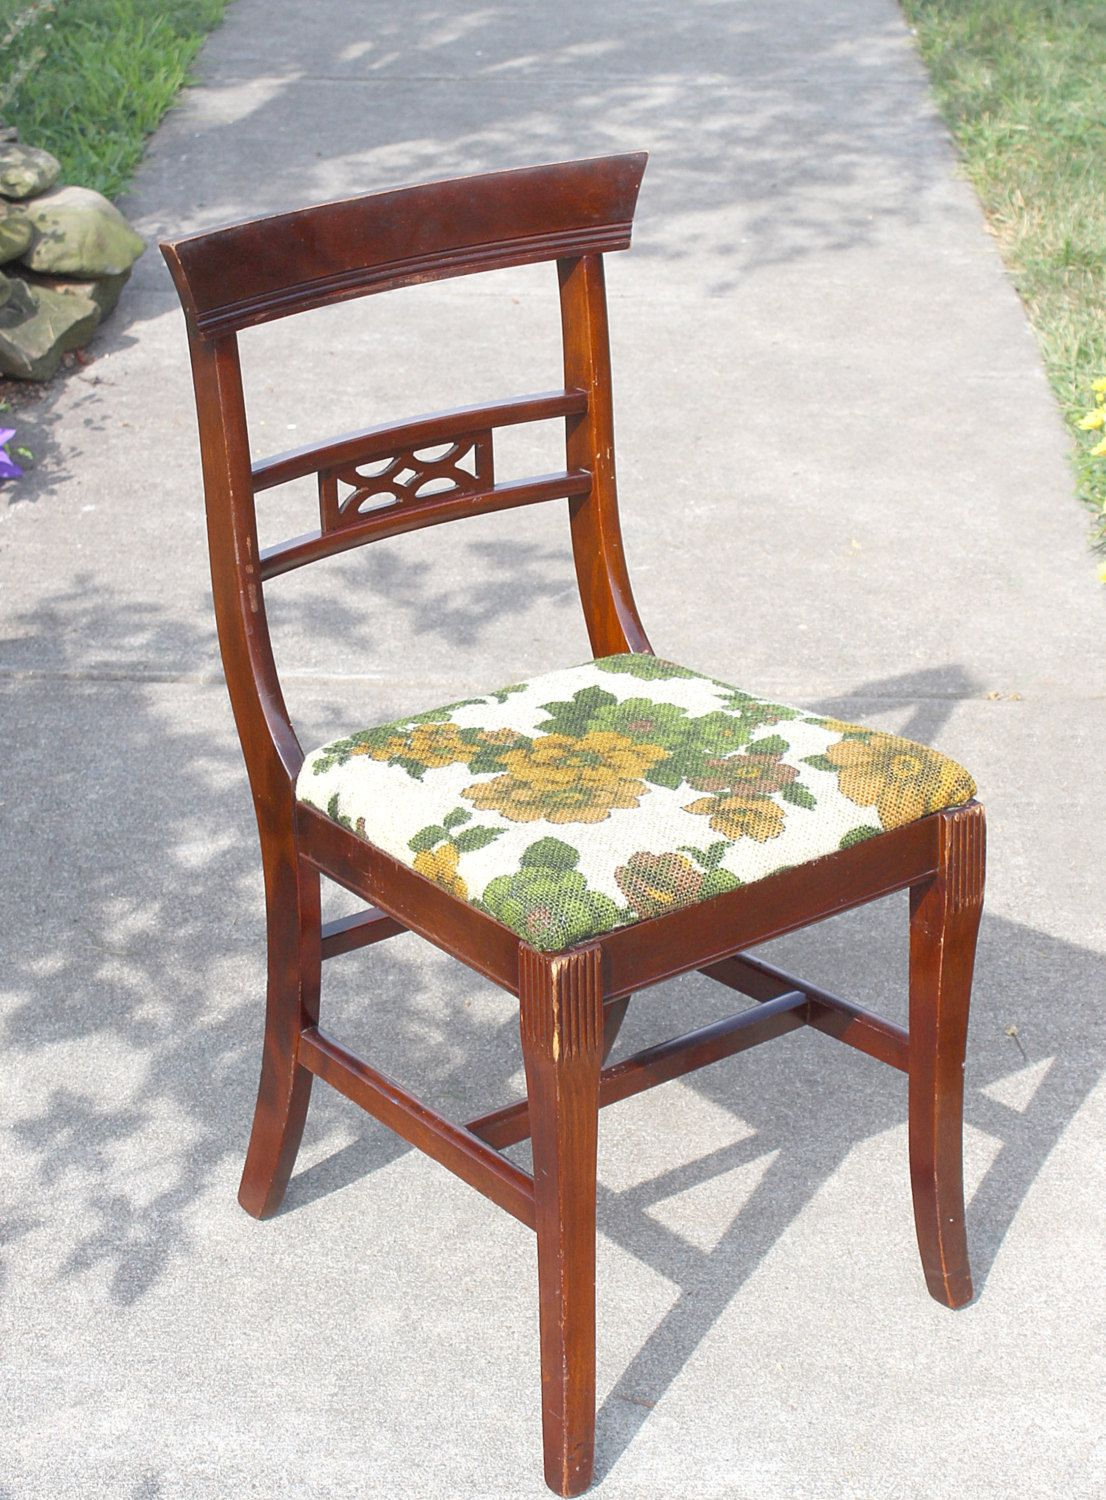 tell city chairs pattern 4526 chair that unfolds into a bed antique mahogany wood marked on bottom beautiful mid century lines cutout back lovely by queenieseclectic etsy